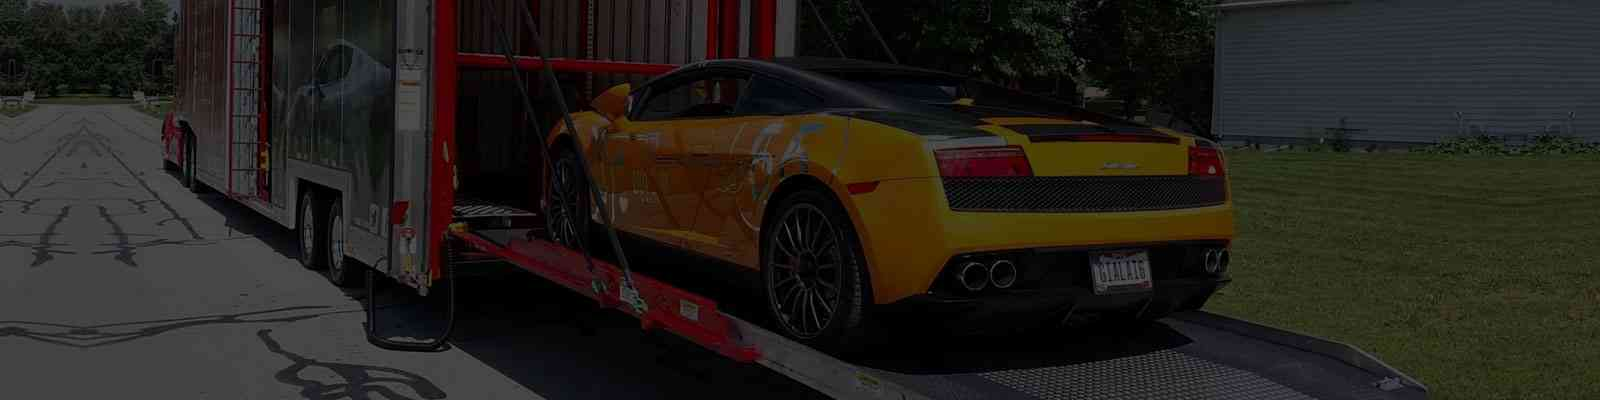 Pune Car Carriers Services